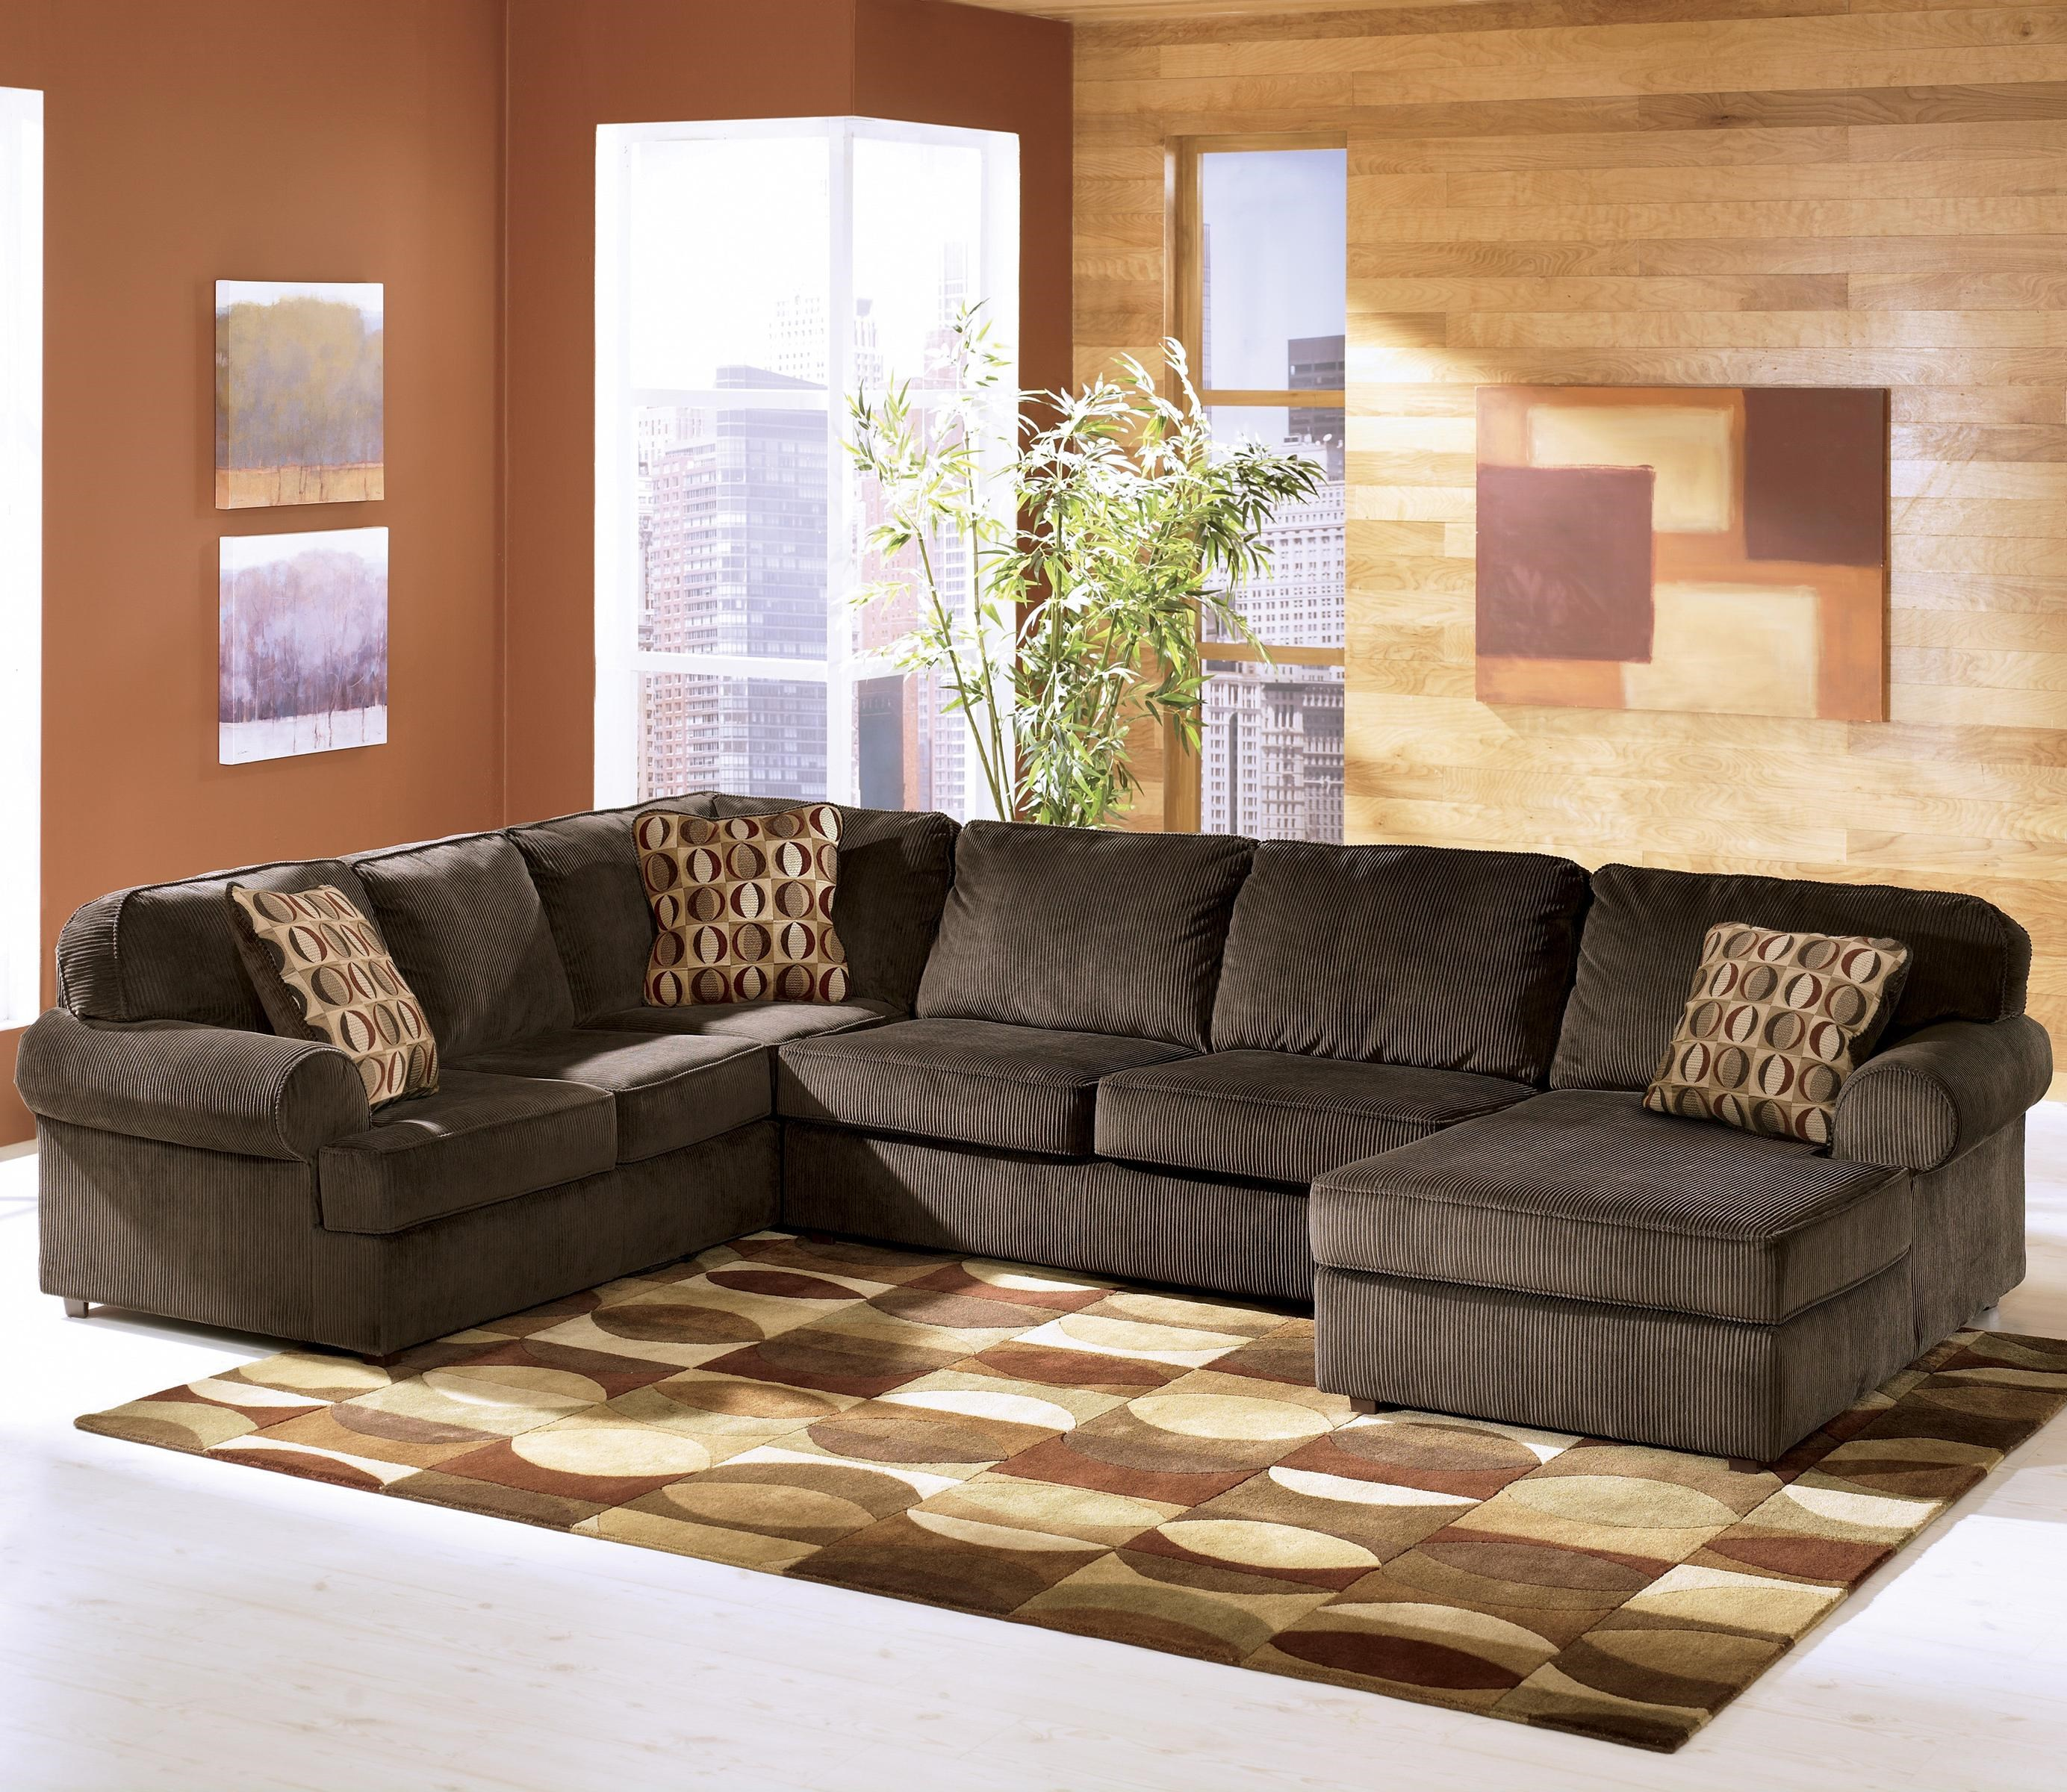 Ashley Furniture Vista Chocolate 3 Piece Sectional with